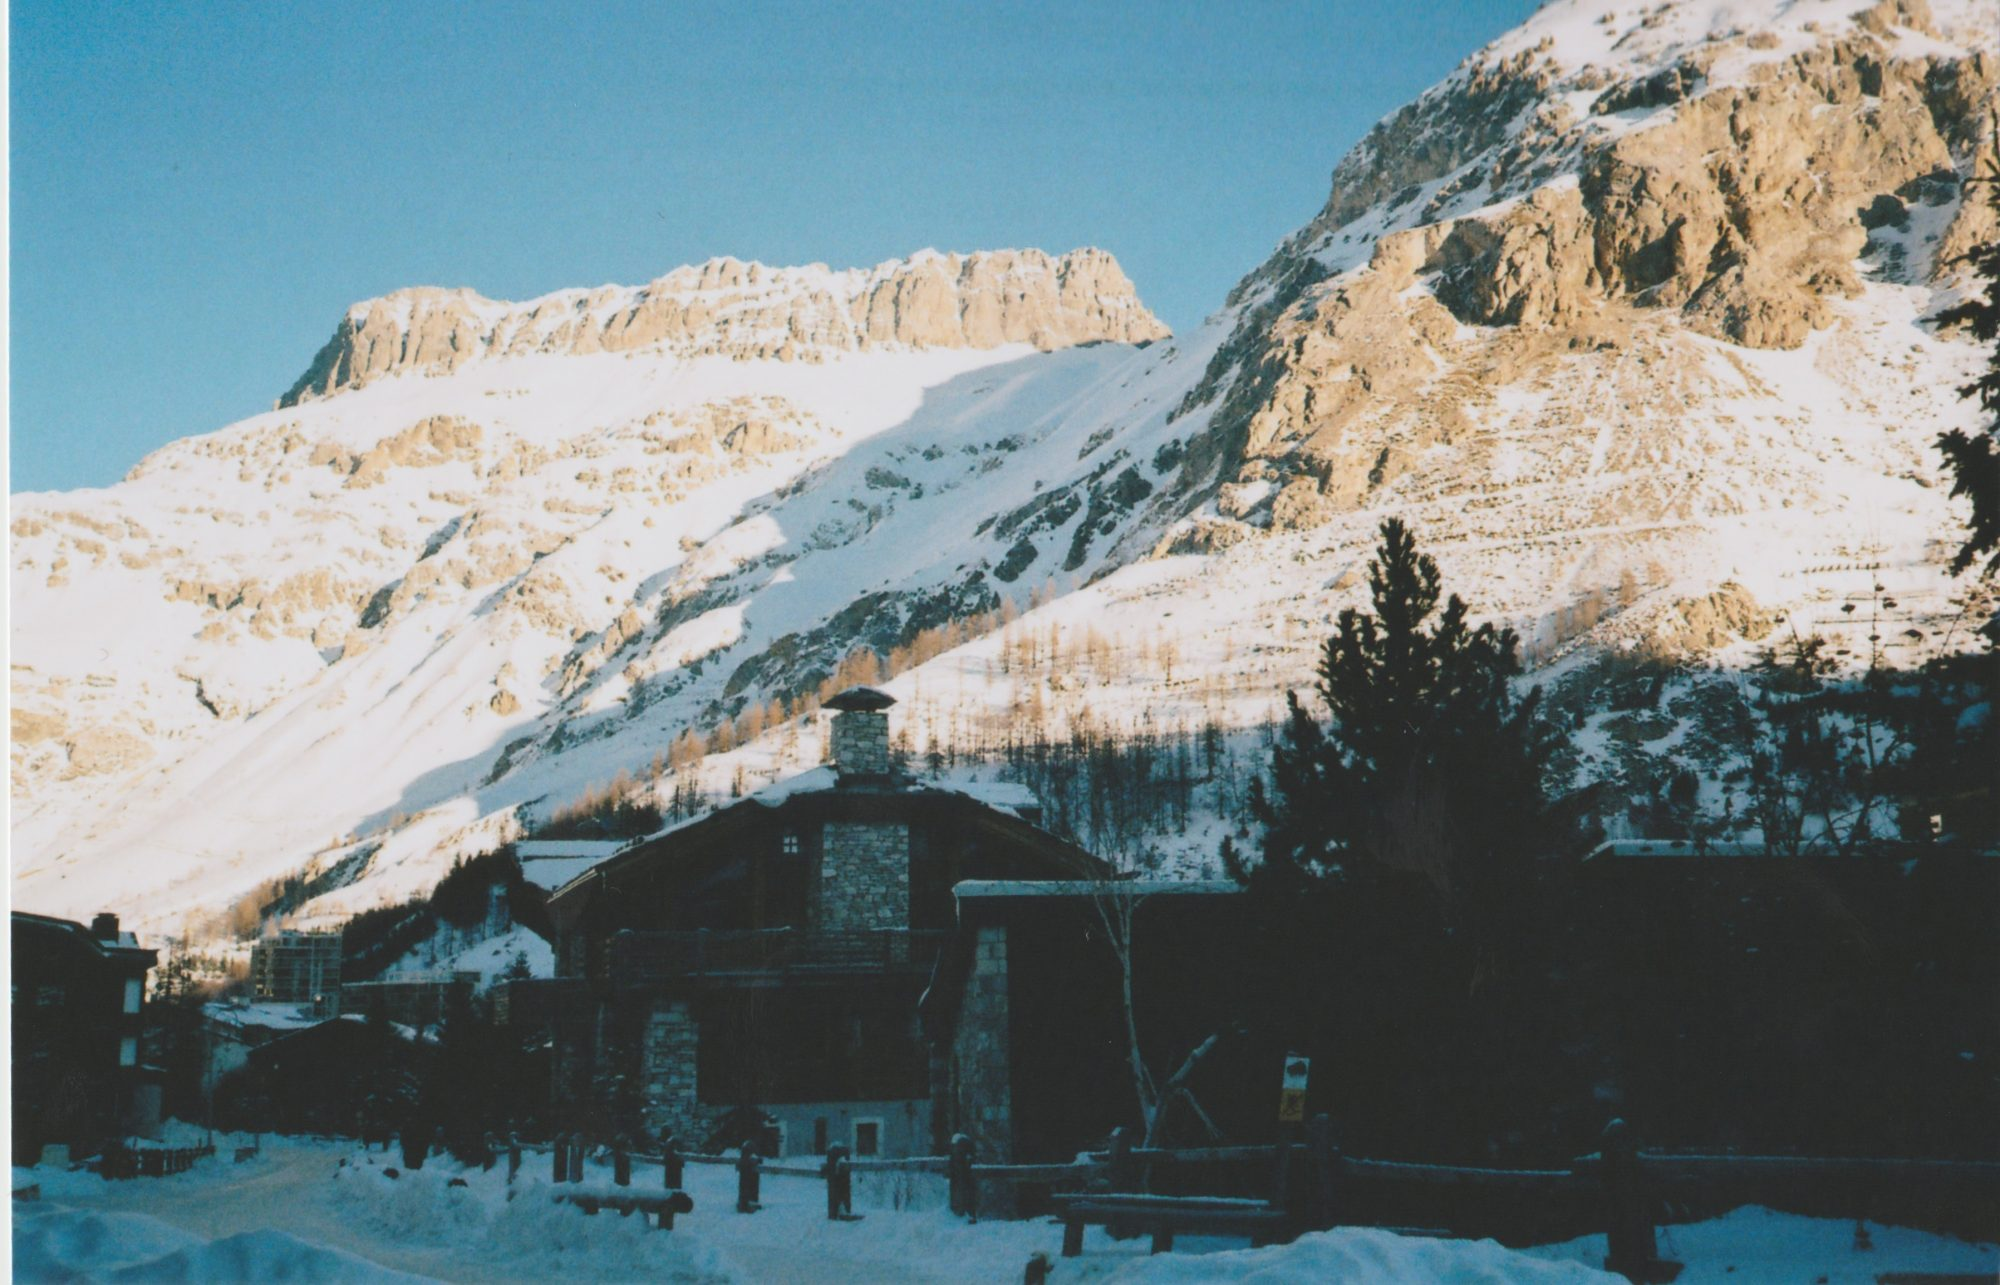 REVIEW OF VAL D'ISERE SKI RESORT